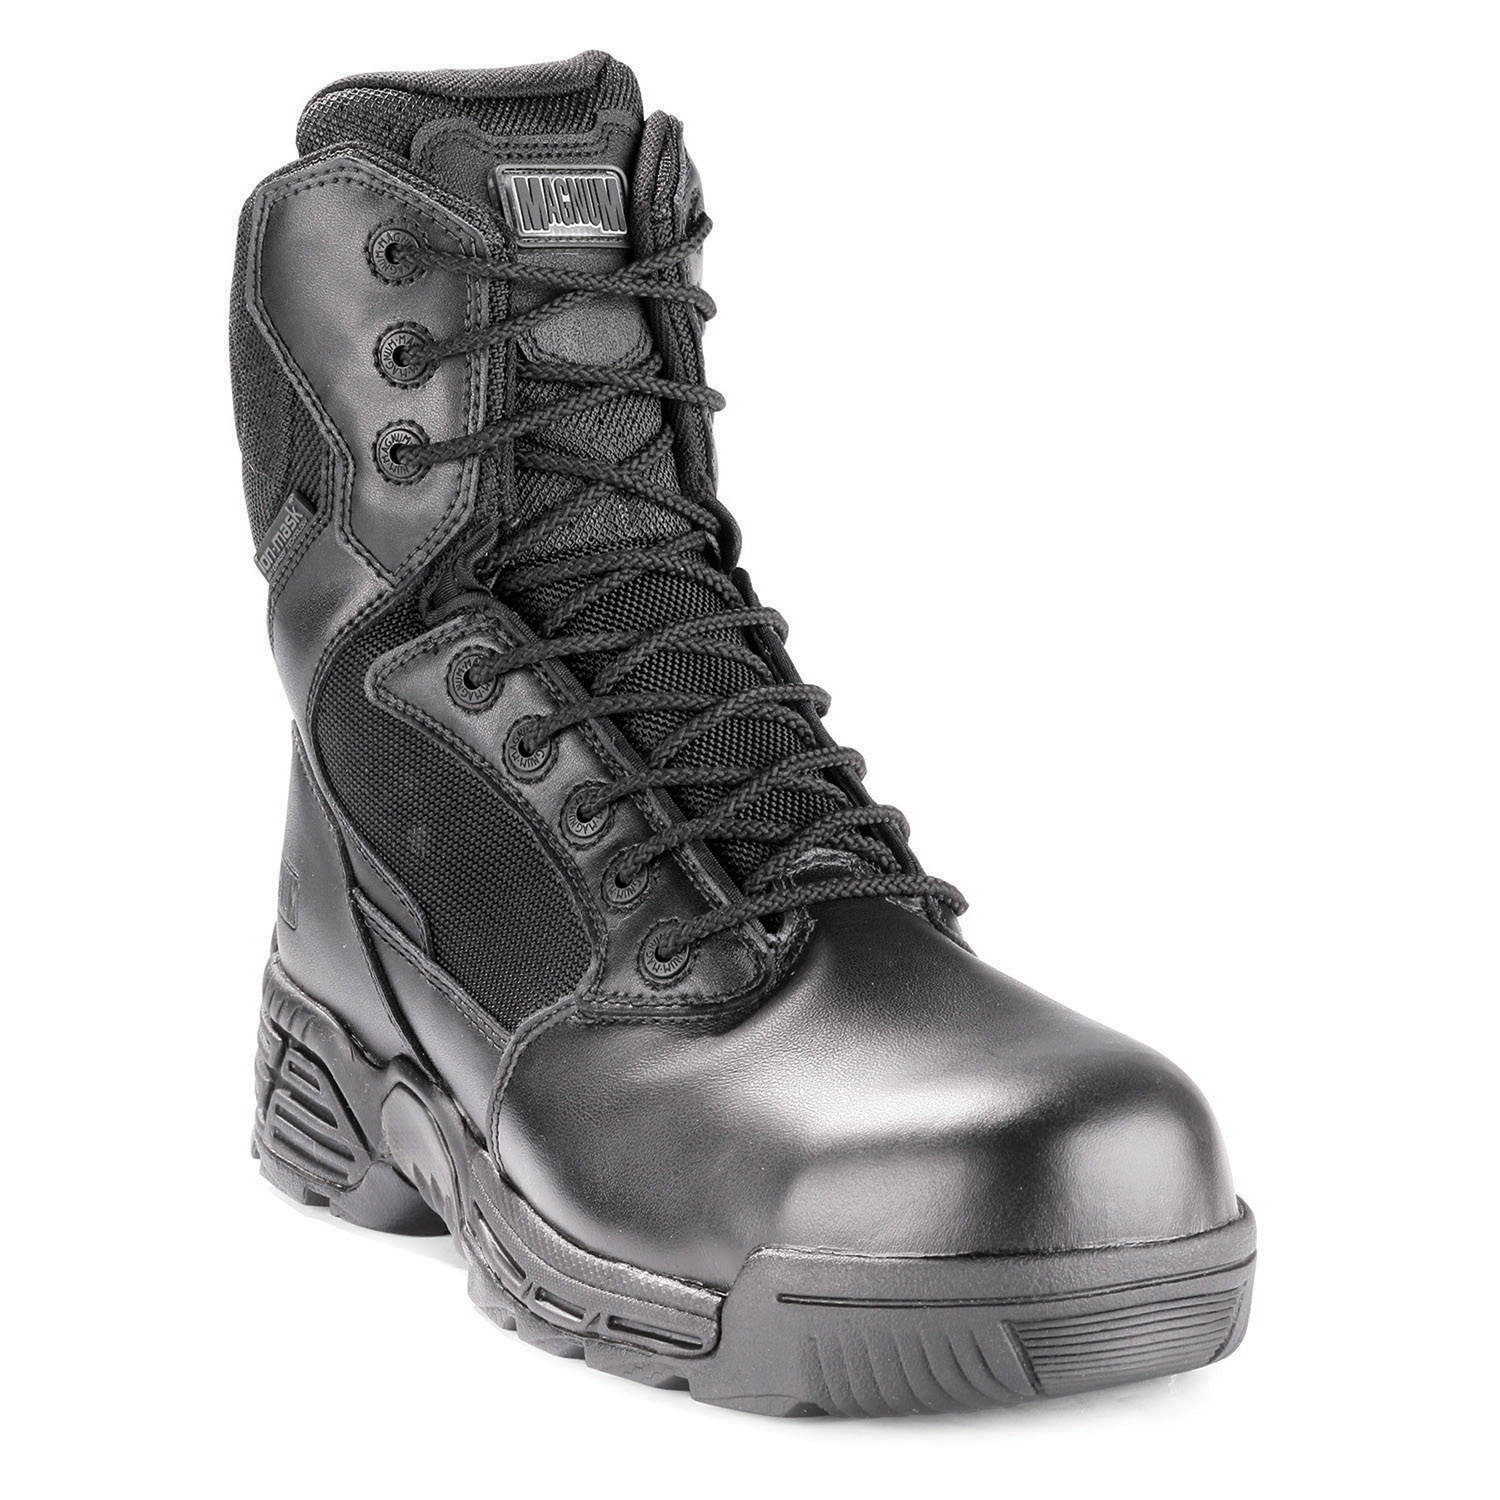 "Magnum Women's 8"" Stealth Force Side Zip Waterproof Boo"